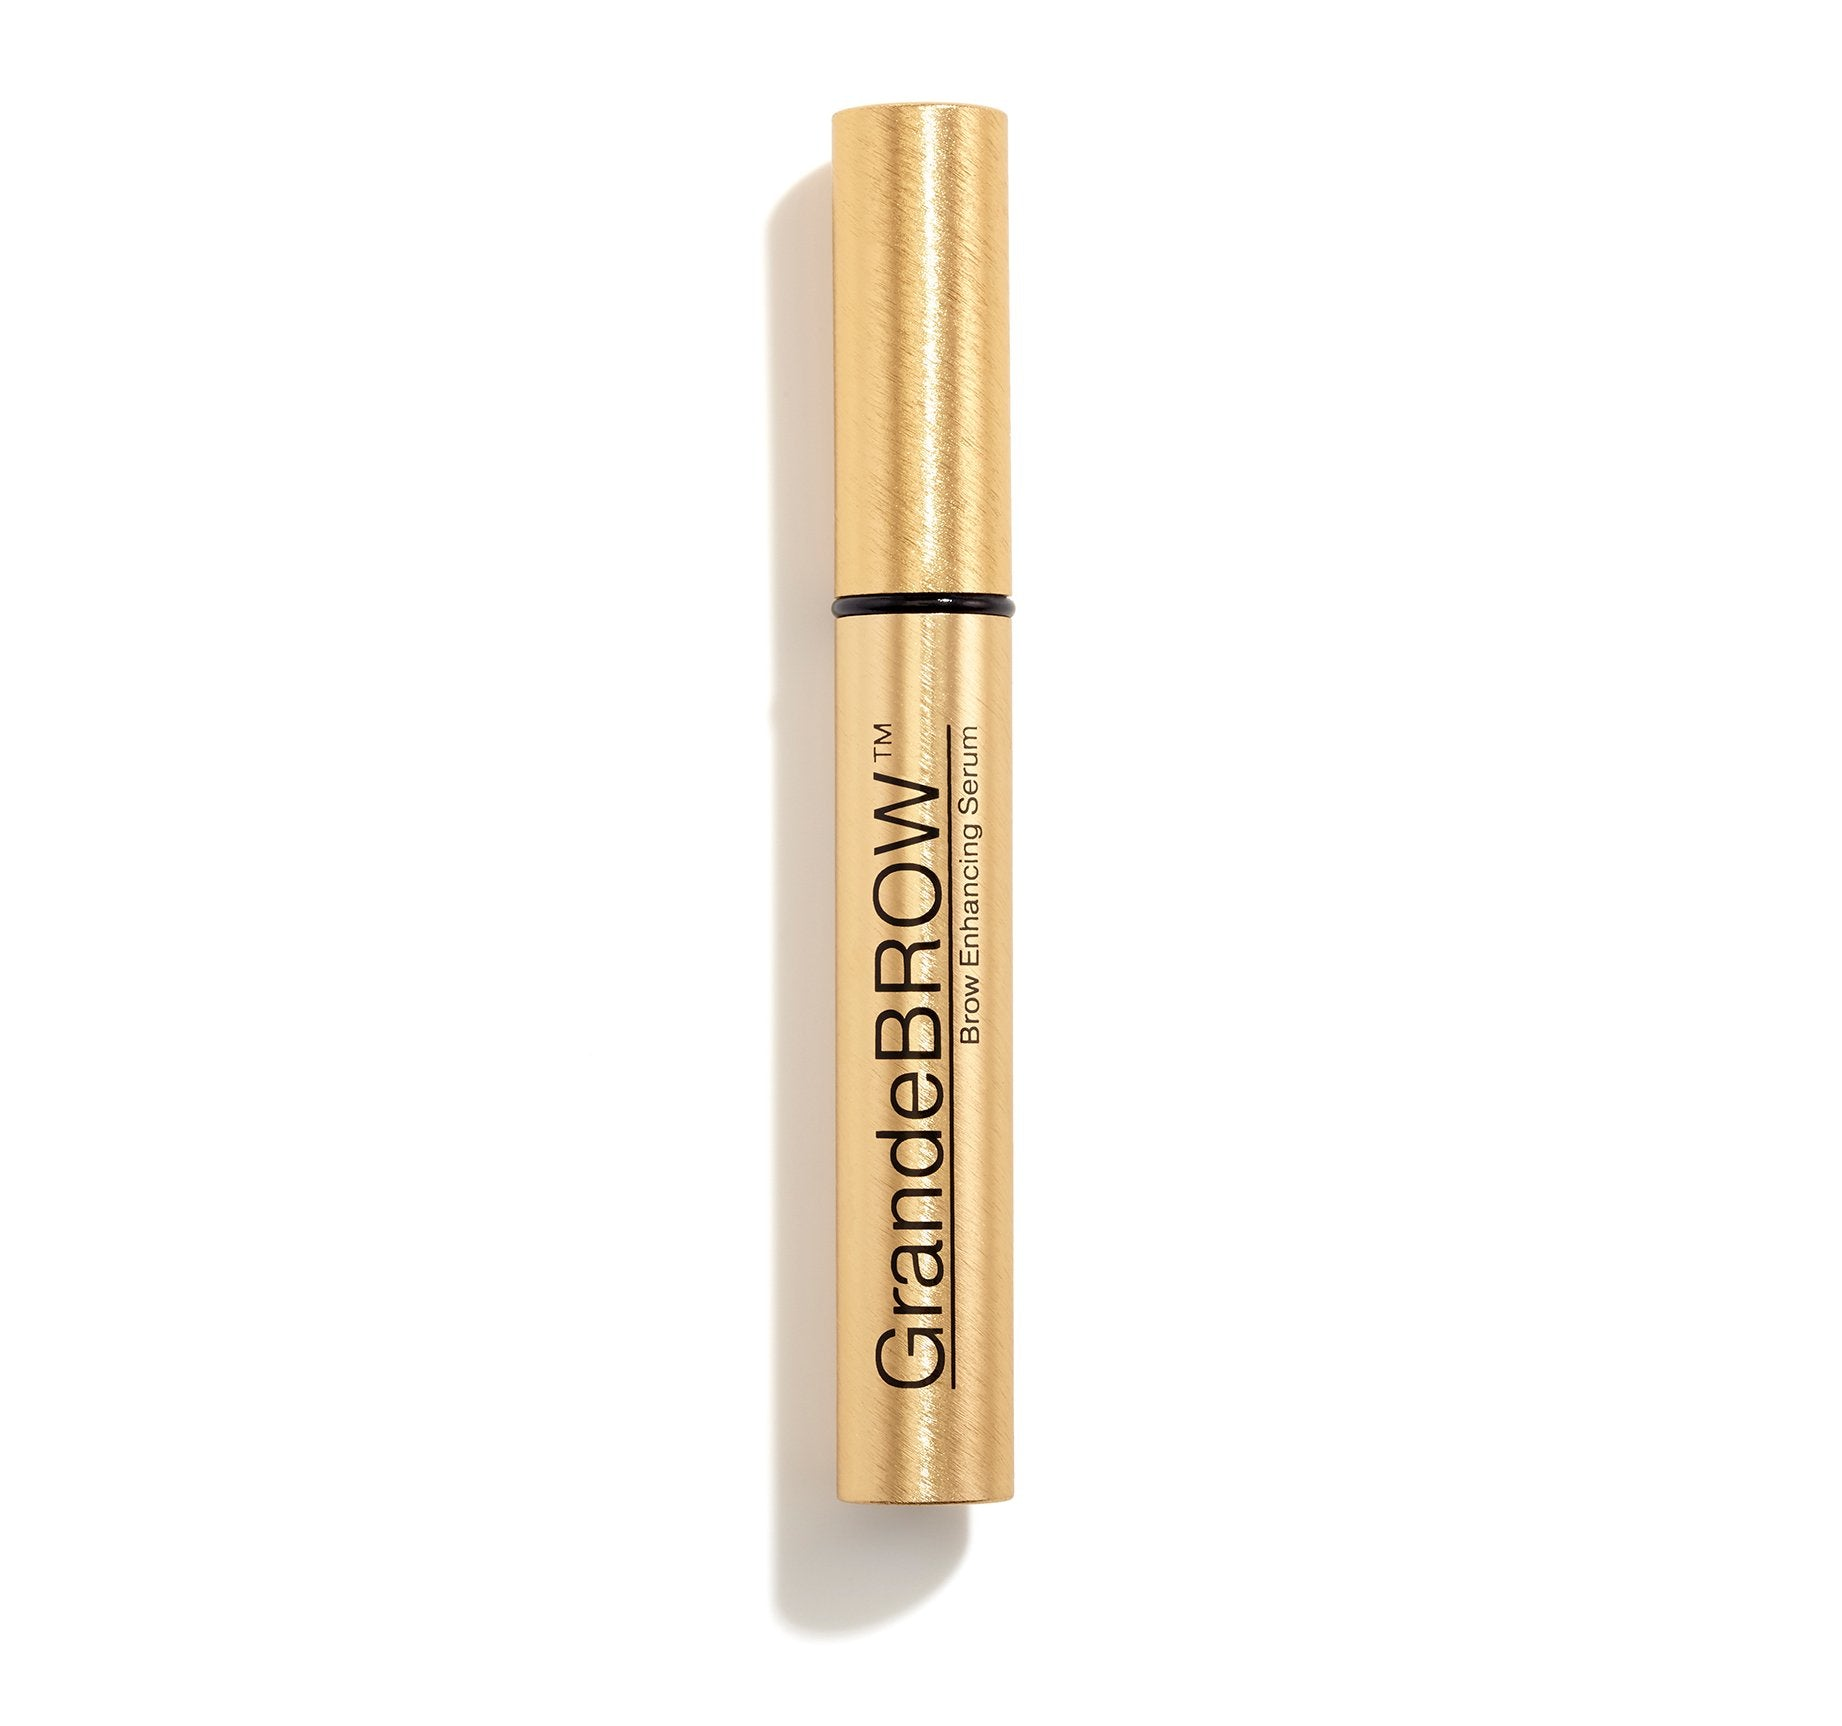 GRANDE BROW-BROW ENHANCING SERUM - 3ML, view larger image